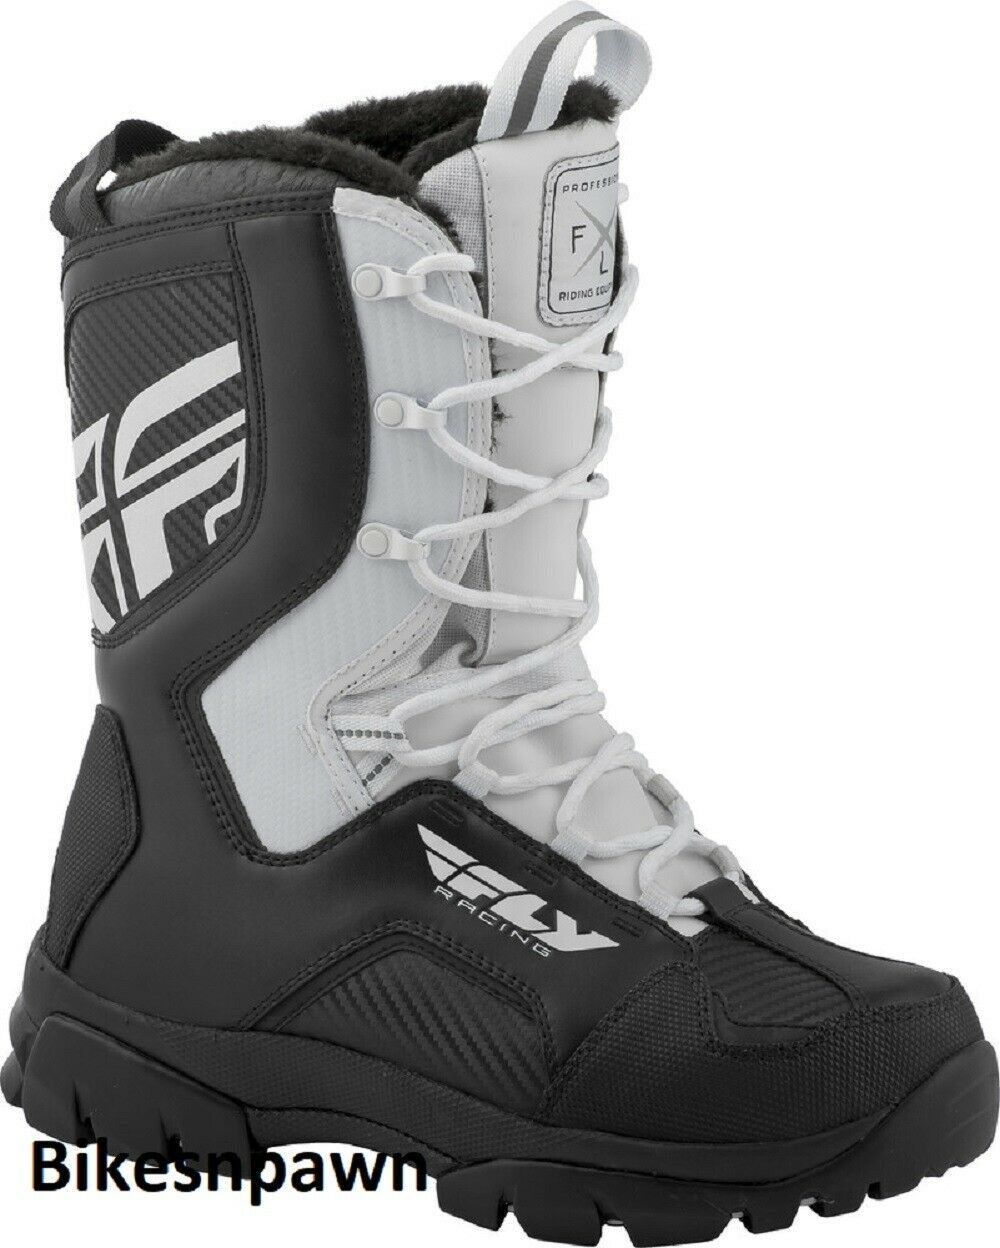 New Mens FLY Racing Marker Black/White Size 13 Snowmobile Winter Boots -40 F